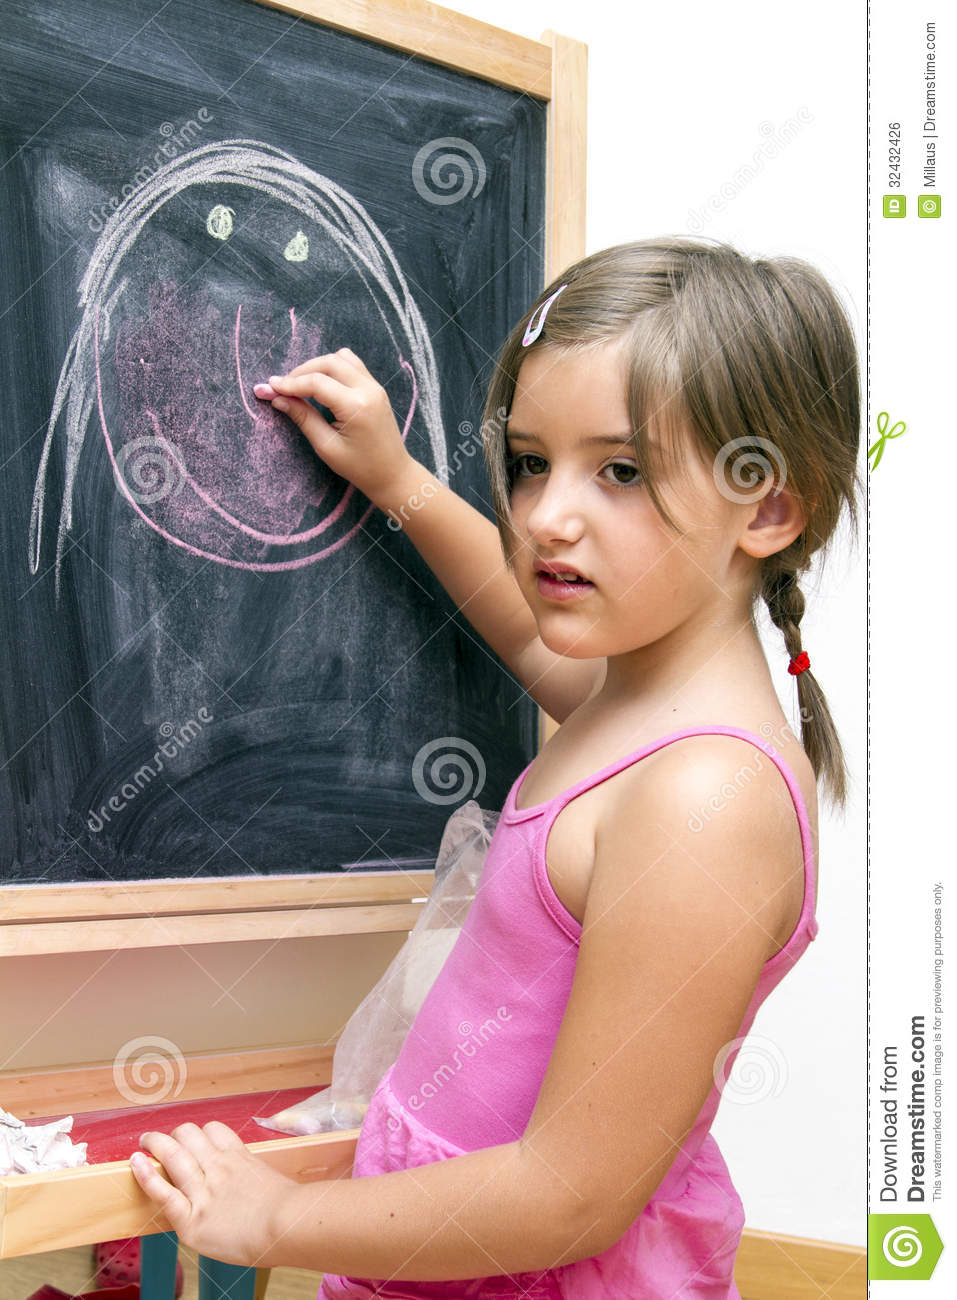 how to draw neatly on a blackboard